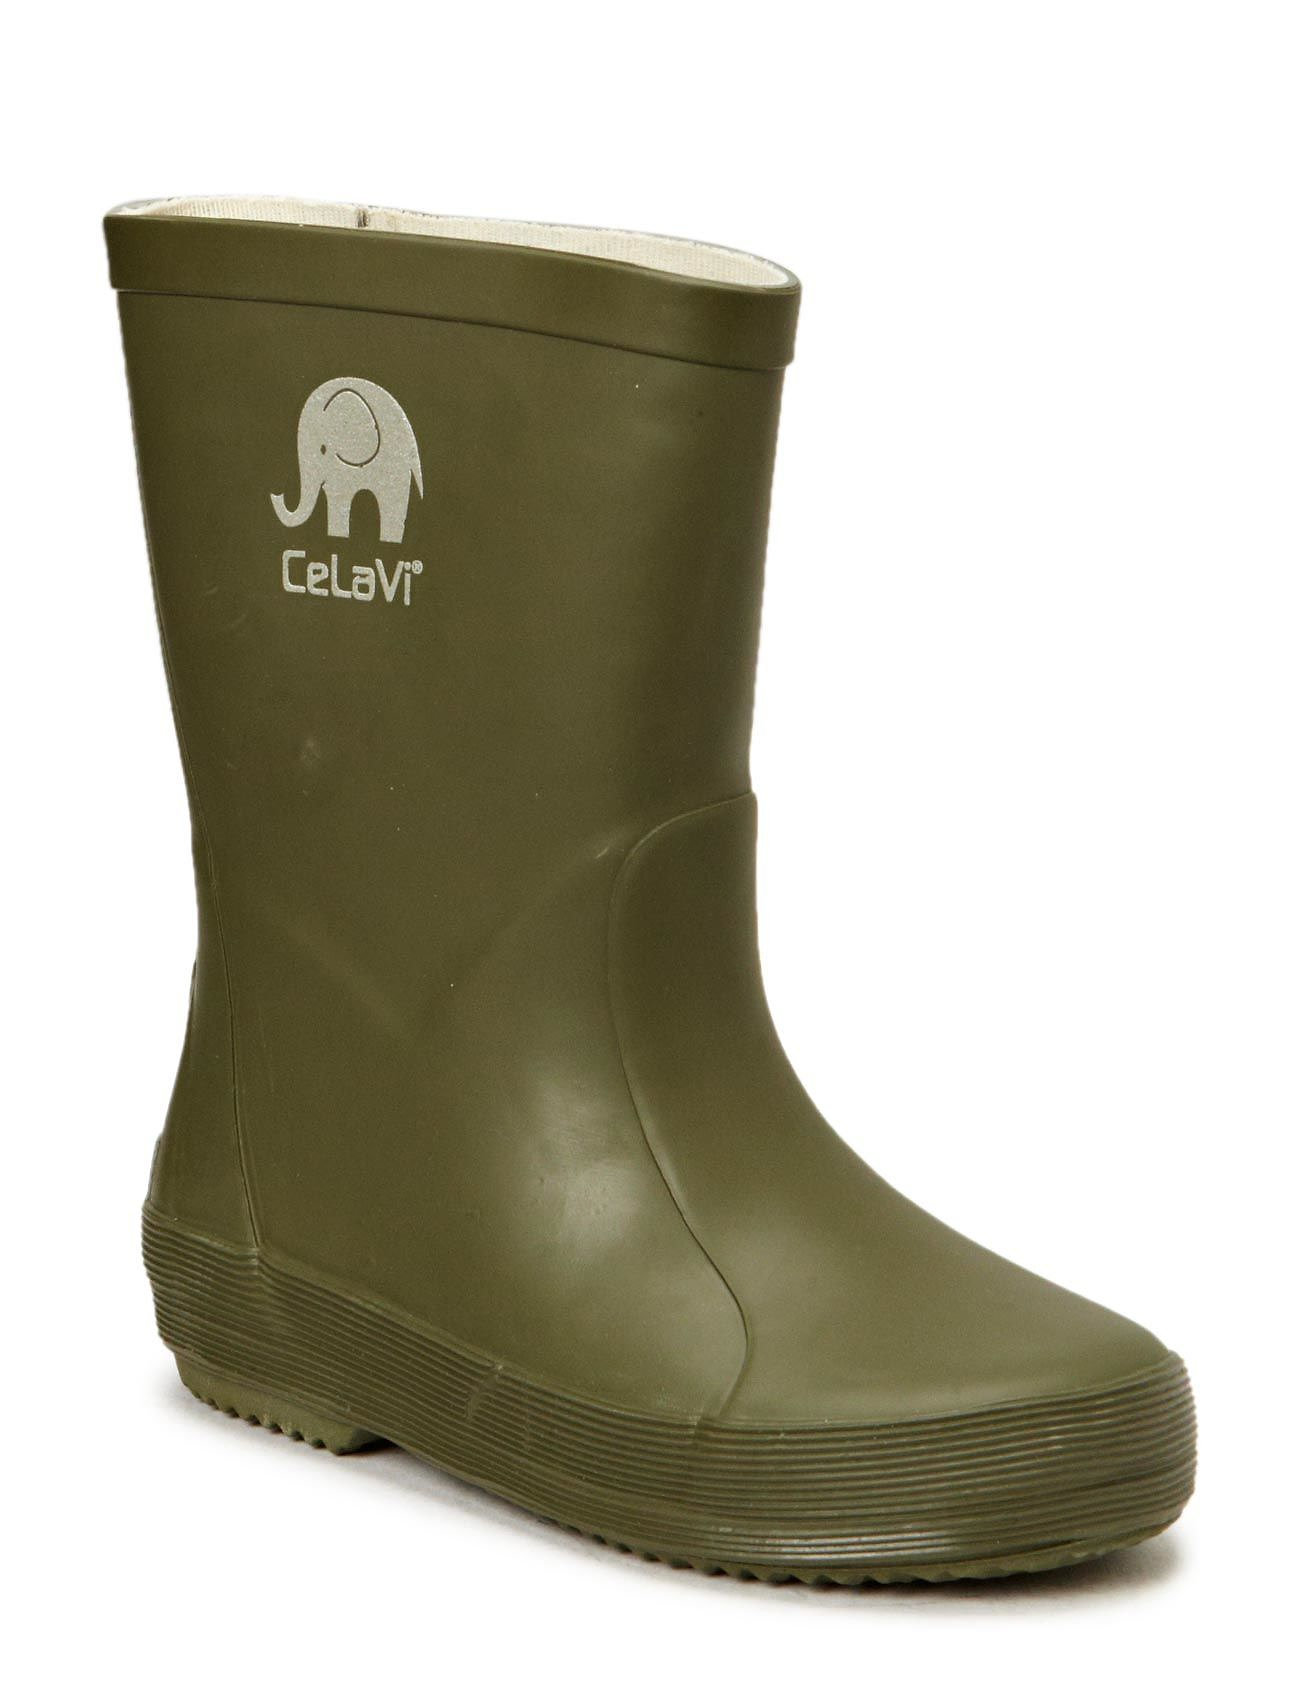 CeLaVi Basic wellies -solid